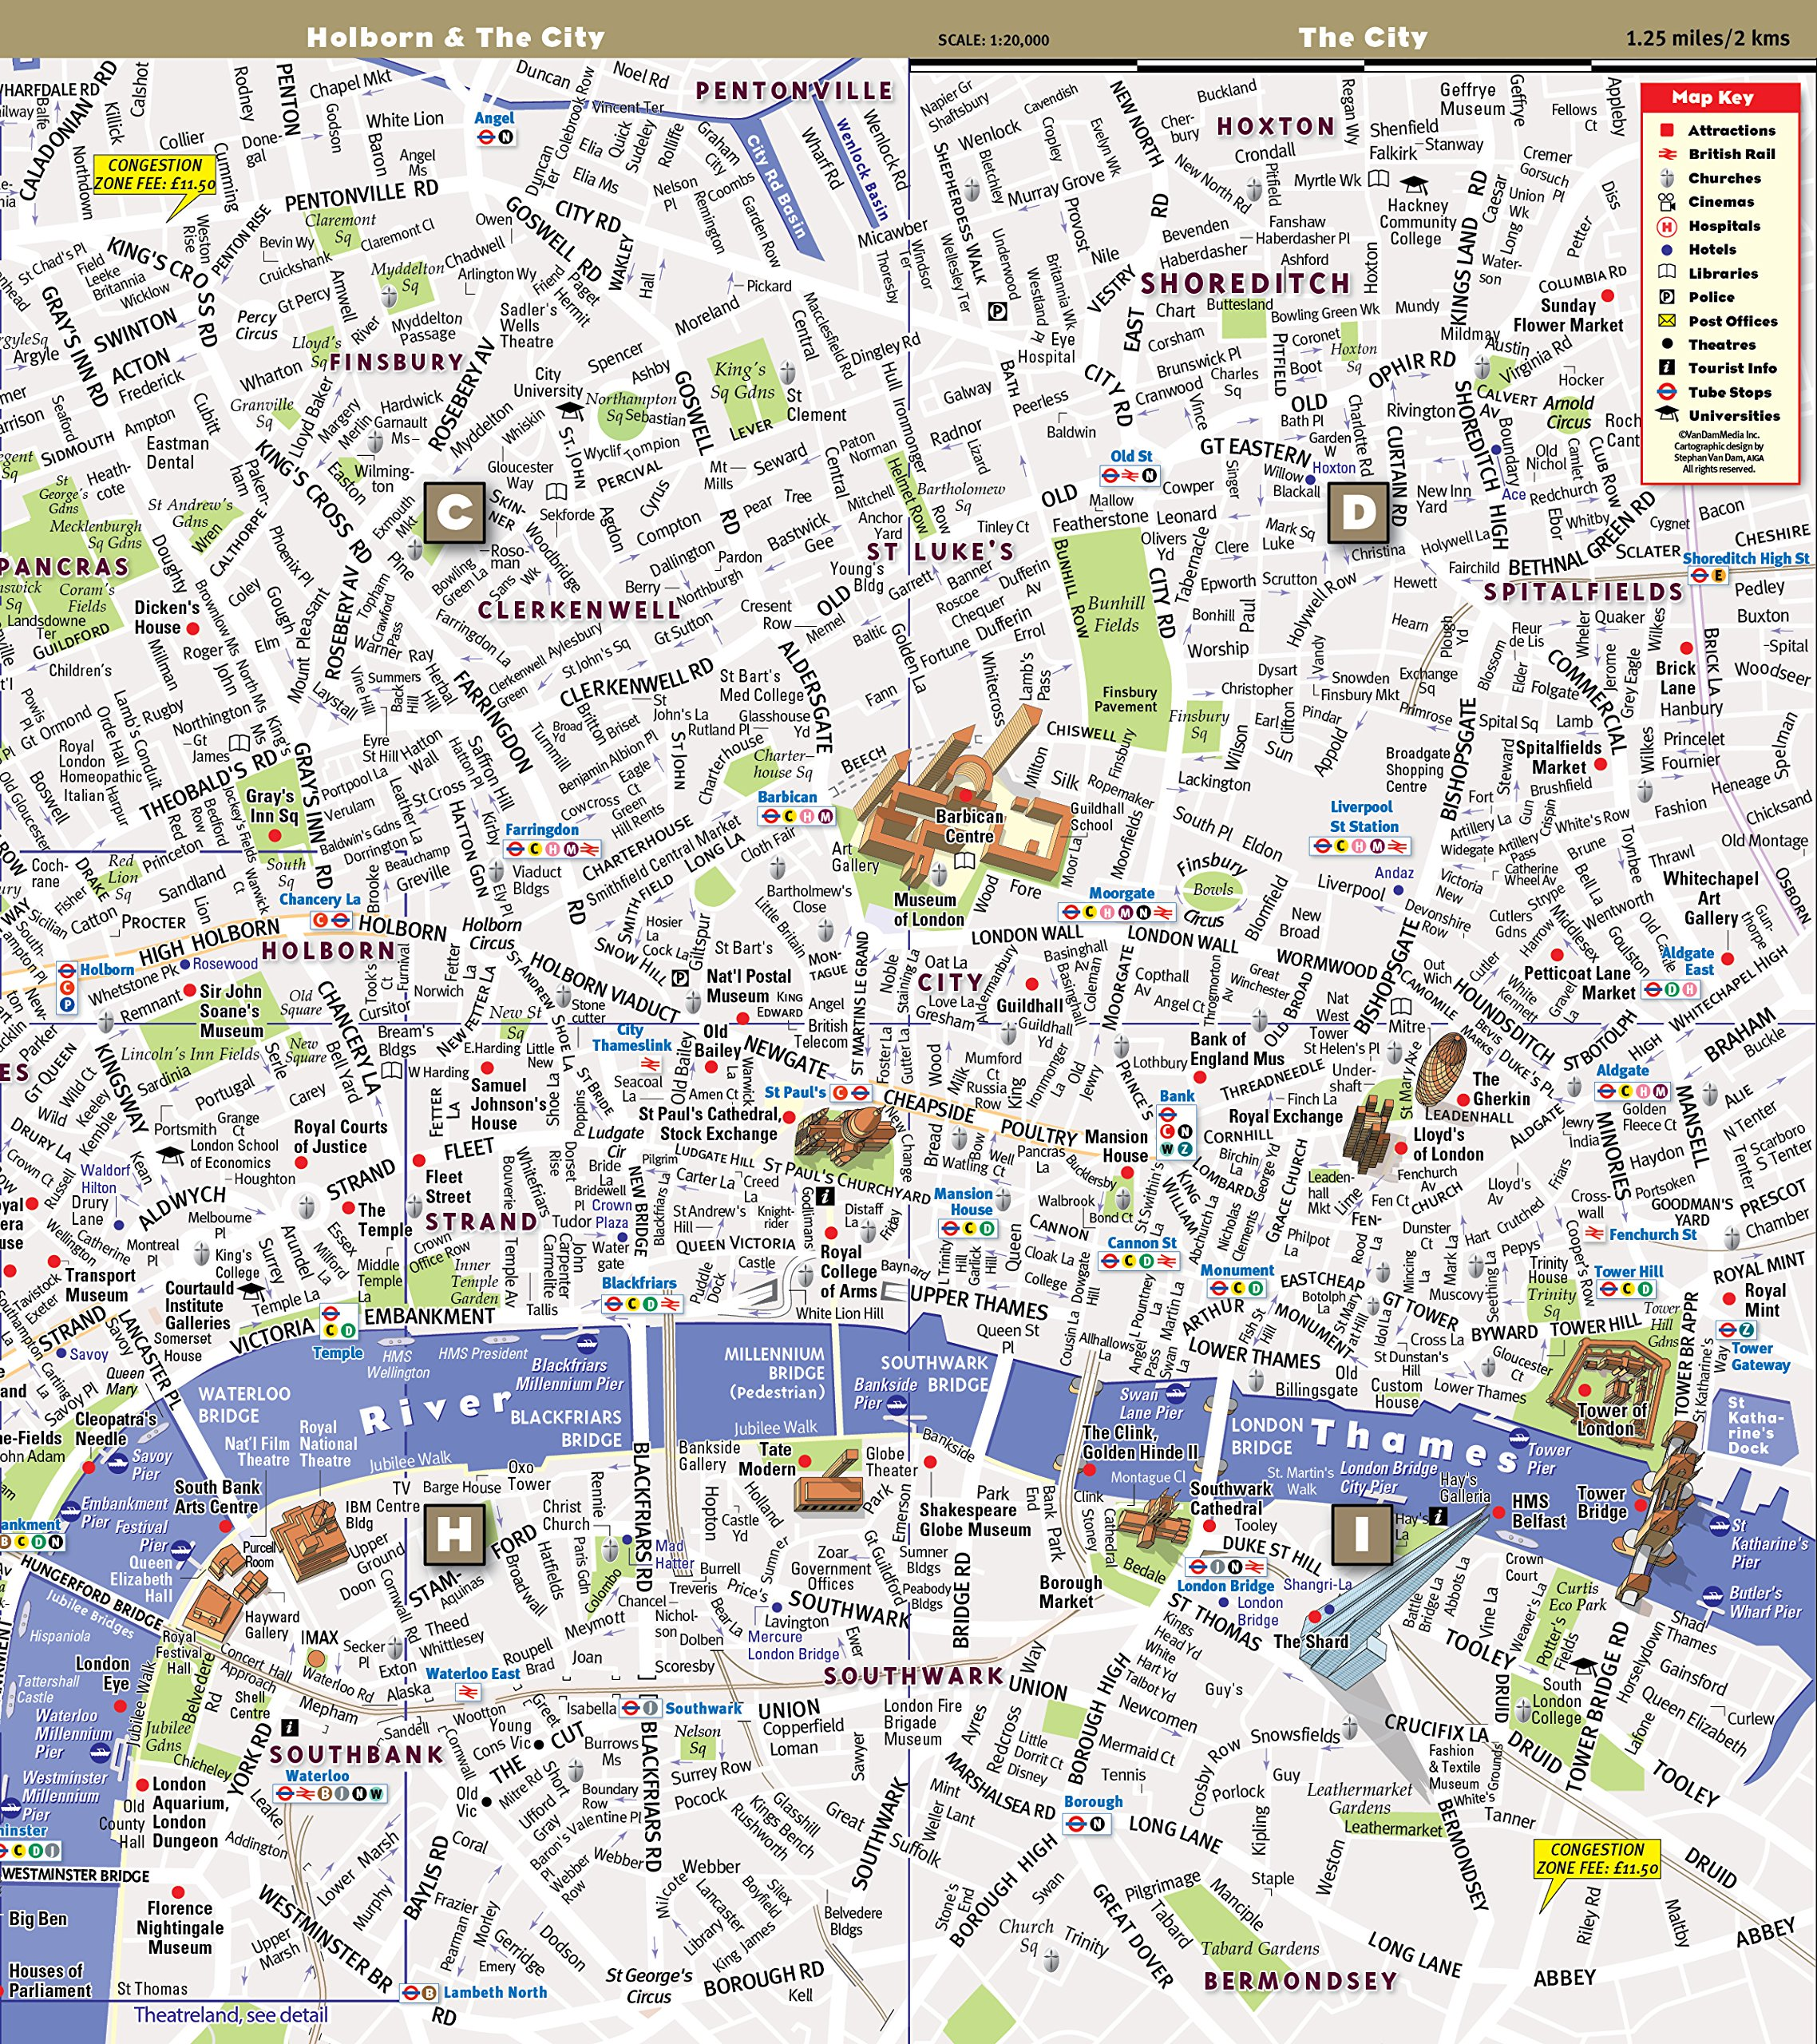 City Street Map of Paris sights and hotels France StreetSmart Paris Map by VanDam 2019 English and French Edition Laminated folding pocket size city travel and Metro map with all attractions